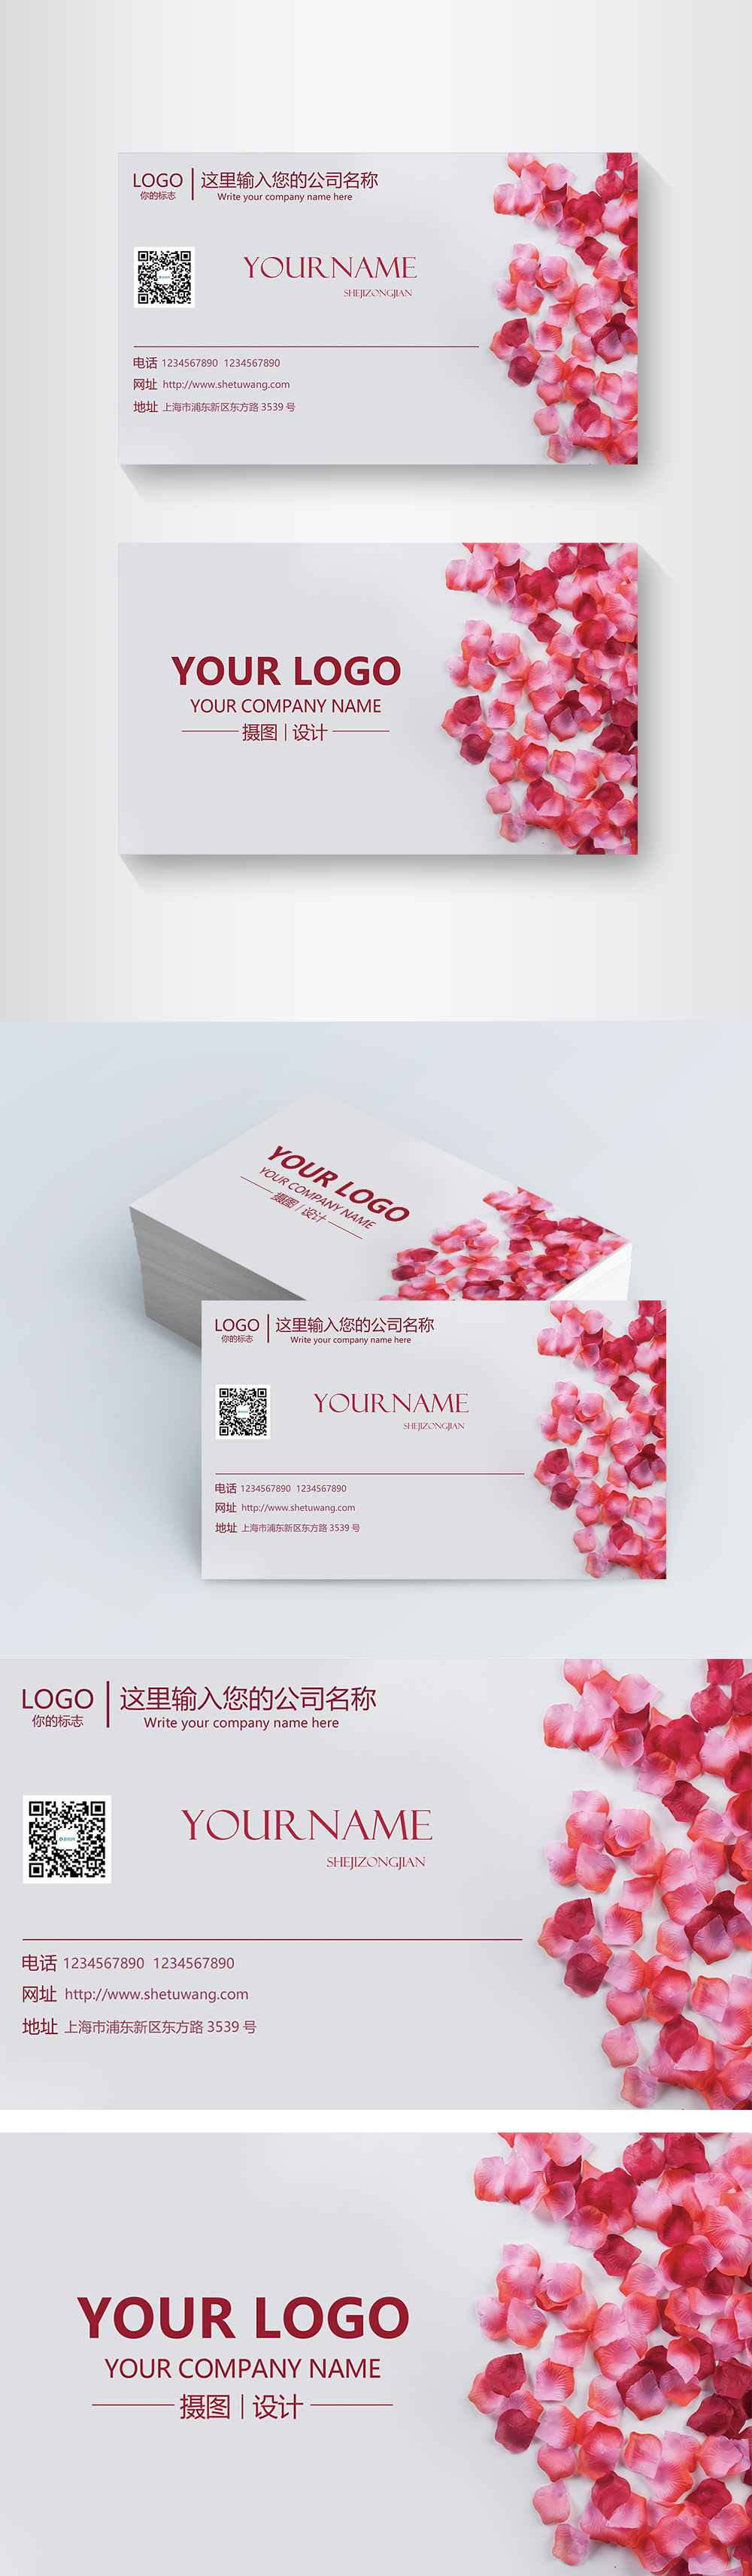 Business Card Design For Pink Flowers Template Imagepicture Free